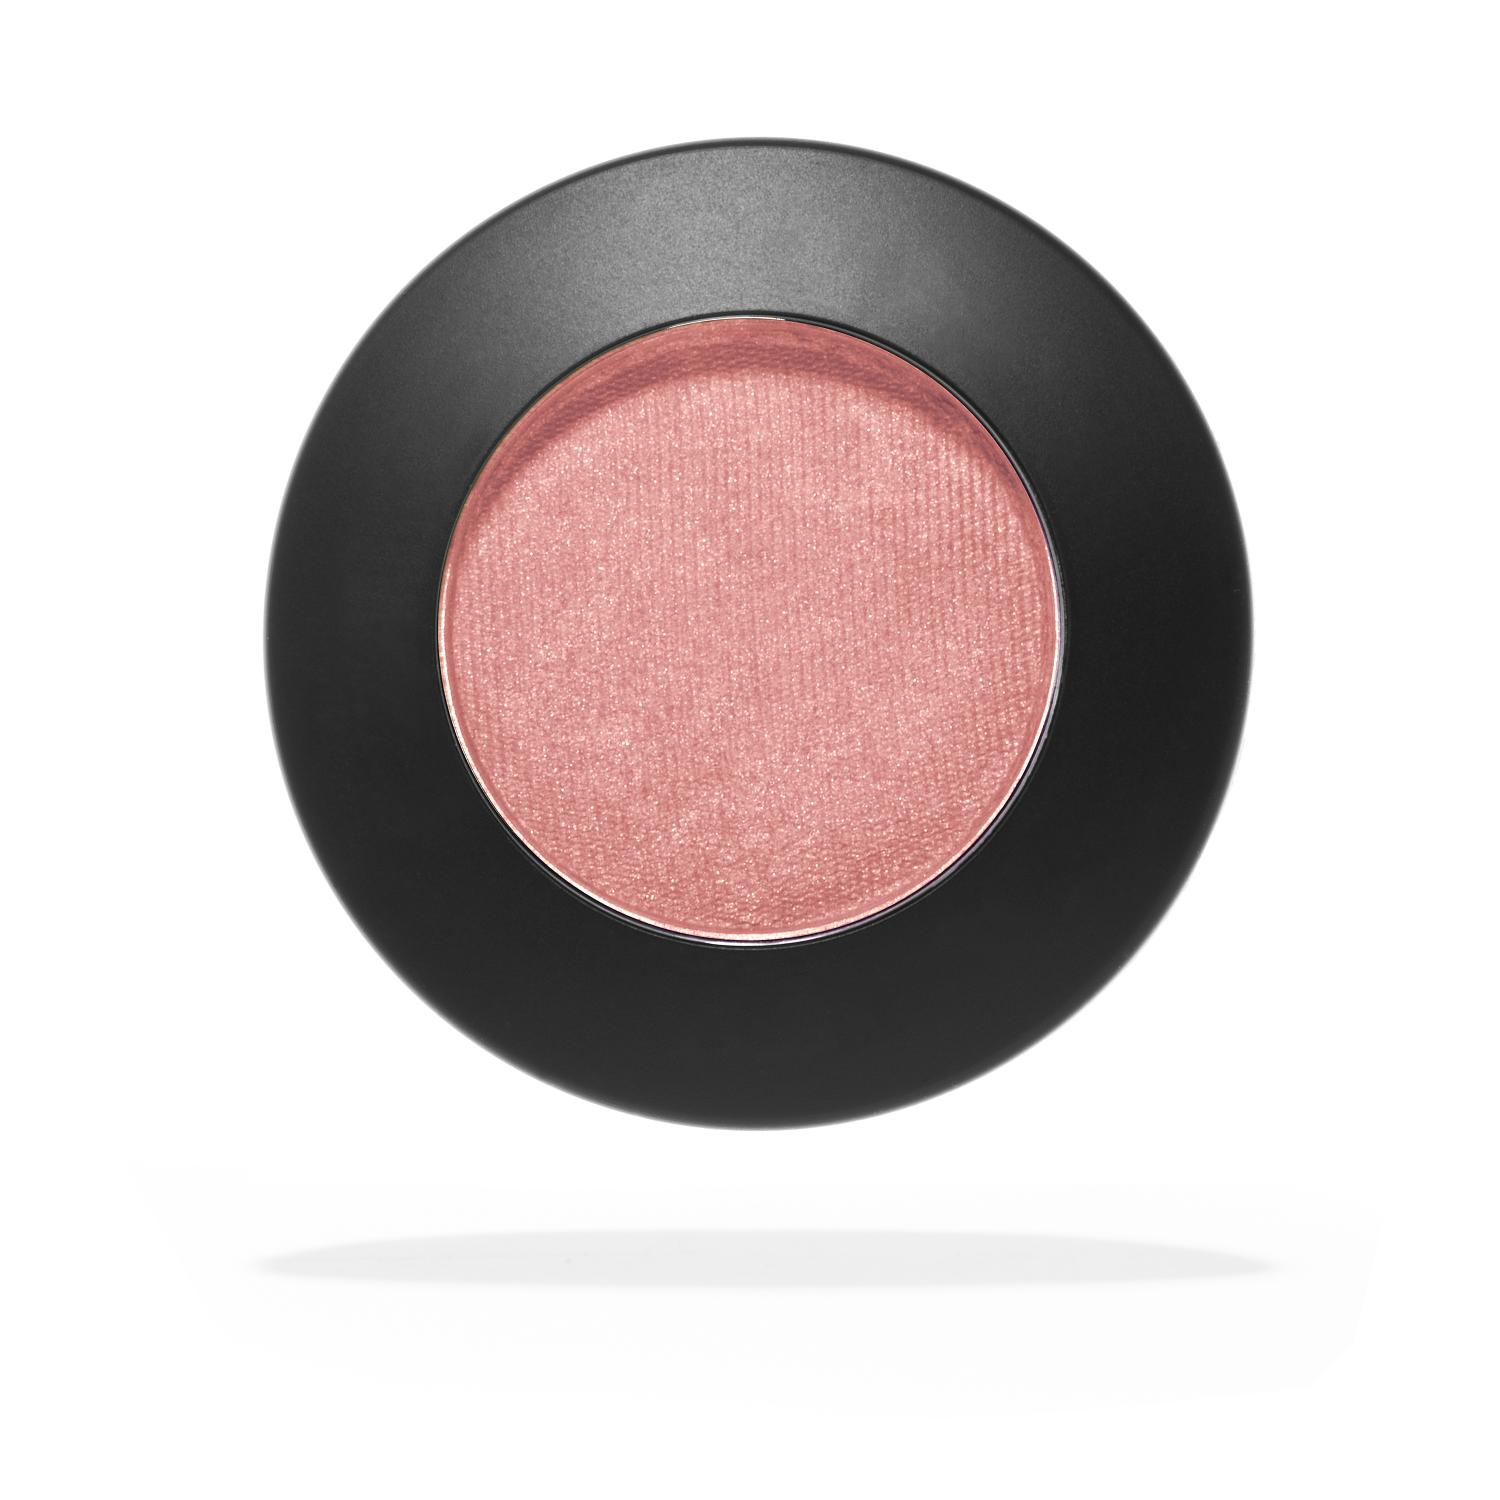 CAMP - MICRONIZED EYE SHADOW